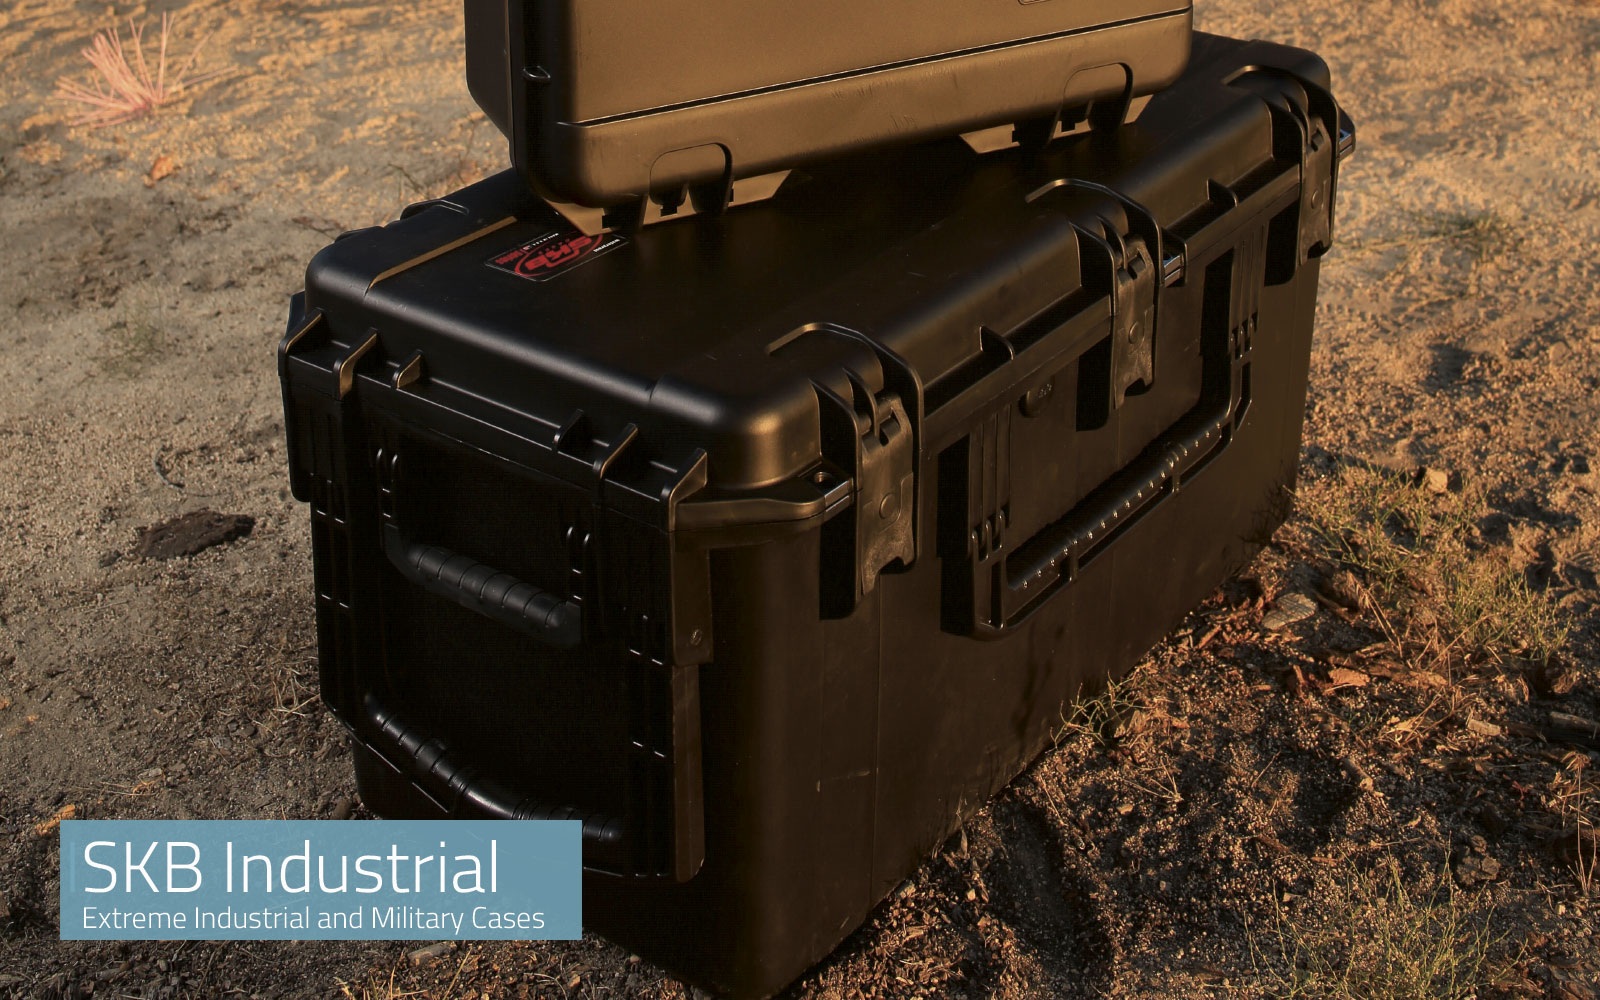 SKB Industrial and Military Cases